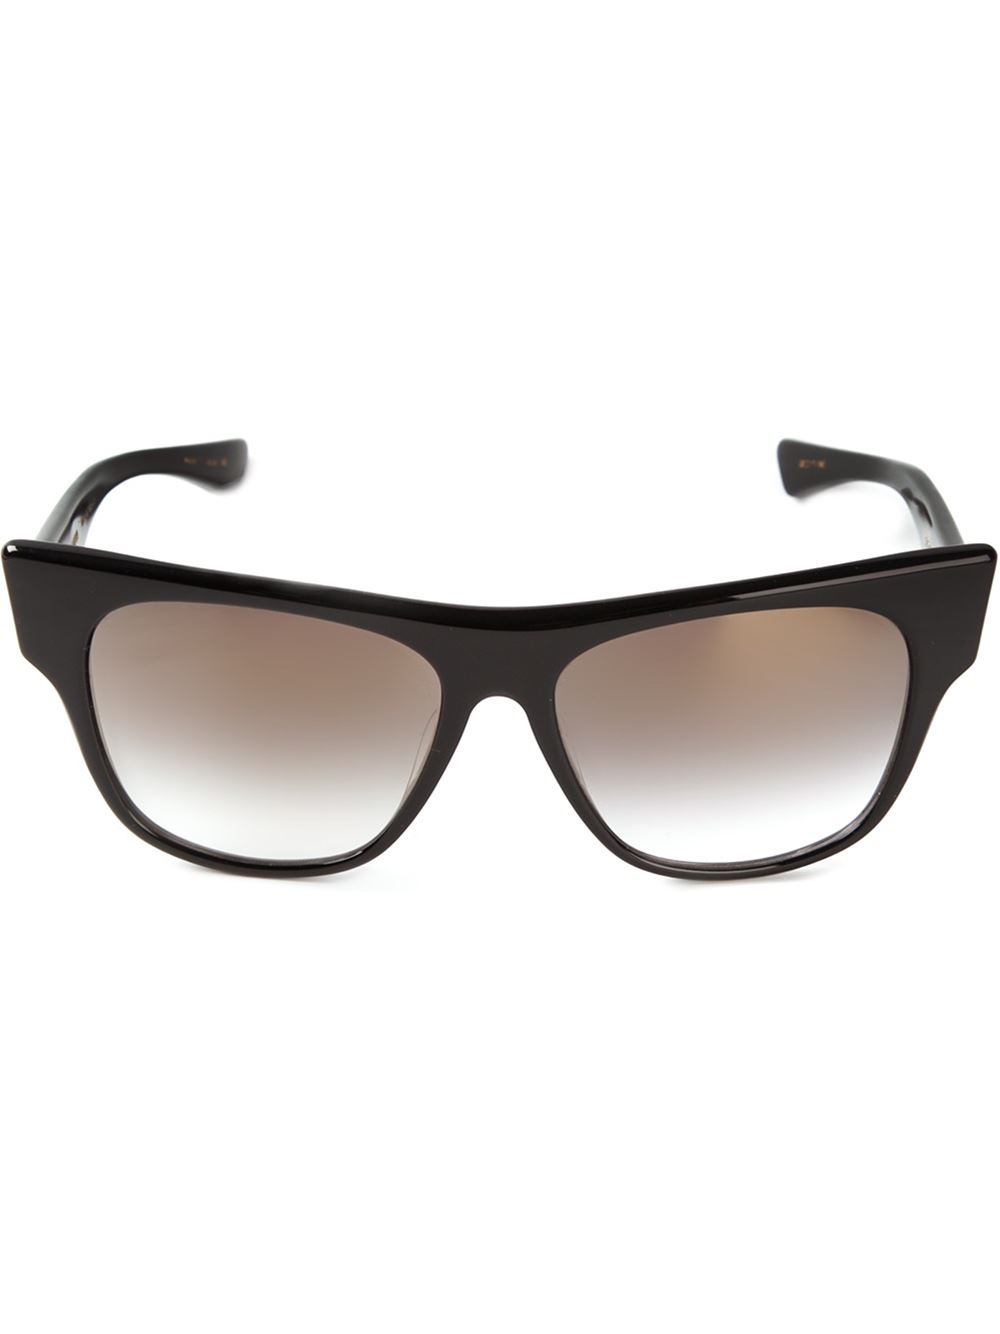 Dita Eyewear 'Arifana' Sunglasses in Black | Lyst Dita Eyewear